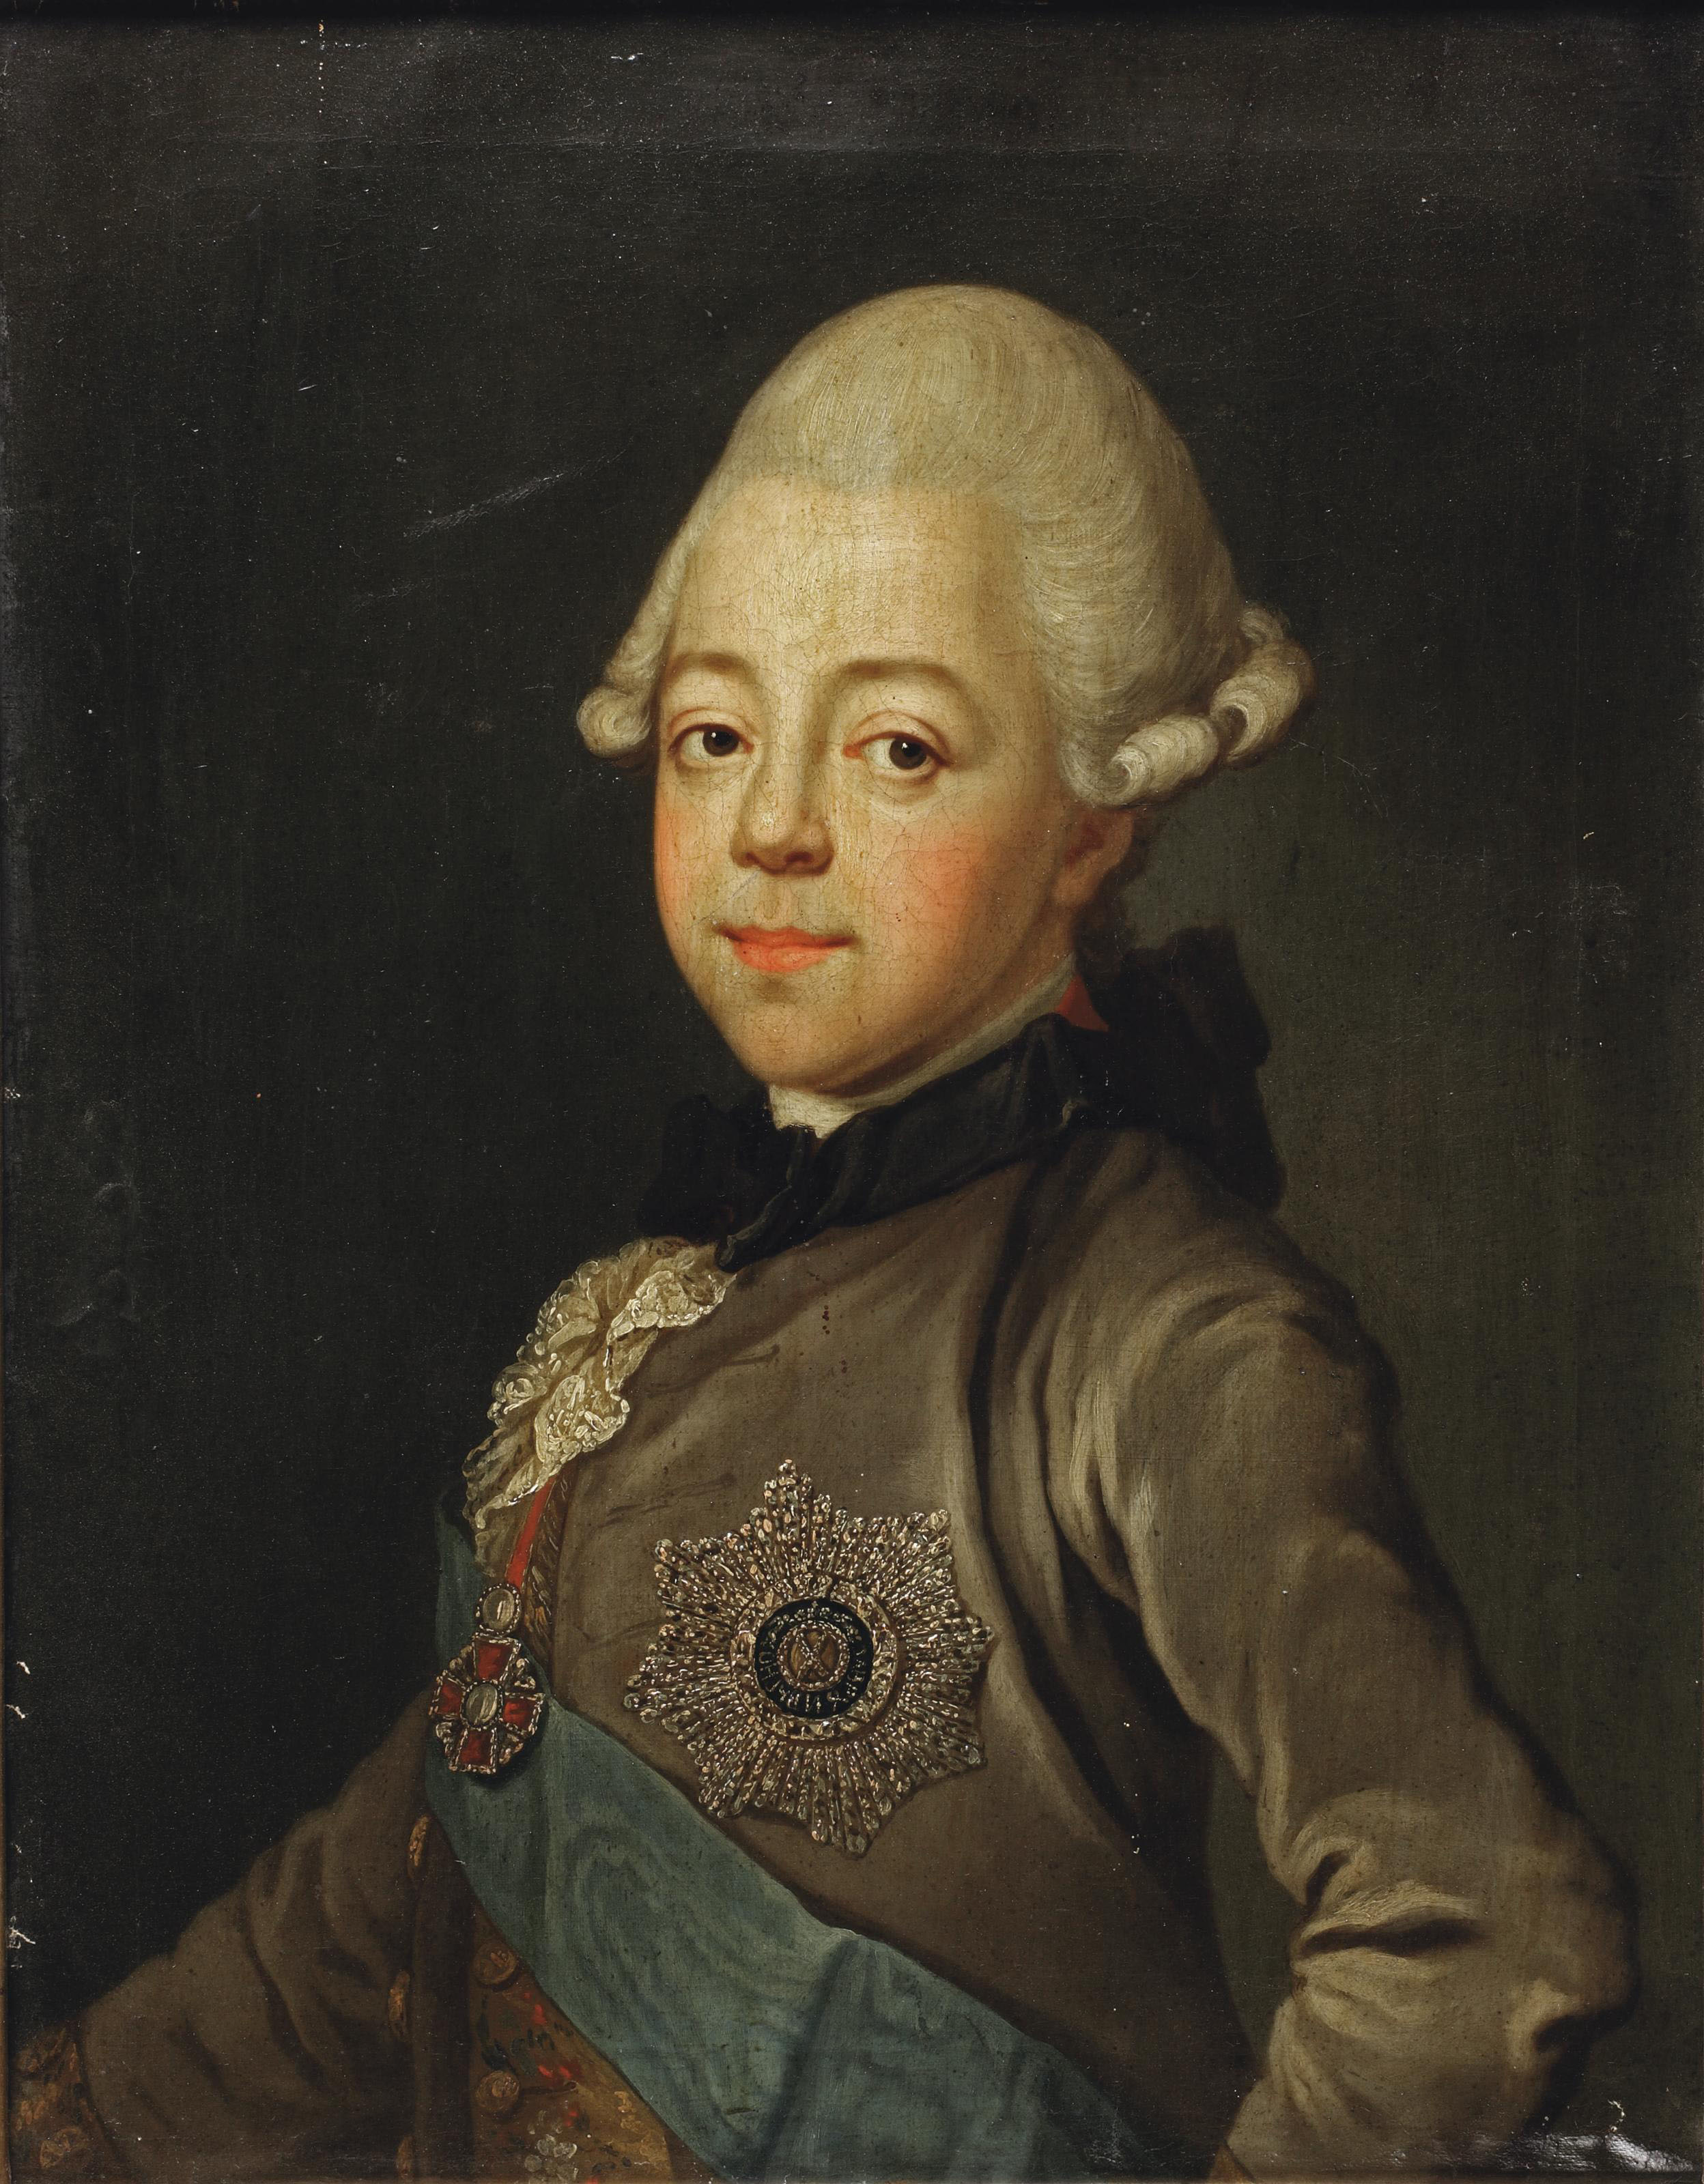 Portrait of Grand Duke Paul Petrovich of Russia, the future Emperor Paul I (1754-1801), half-length, with the sash and star of the Order of Saint Andrew the First-Called, and the star of the Order of St. Anna insignia of the Order of St. Andrew and the Order of St. Anna